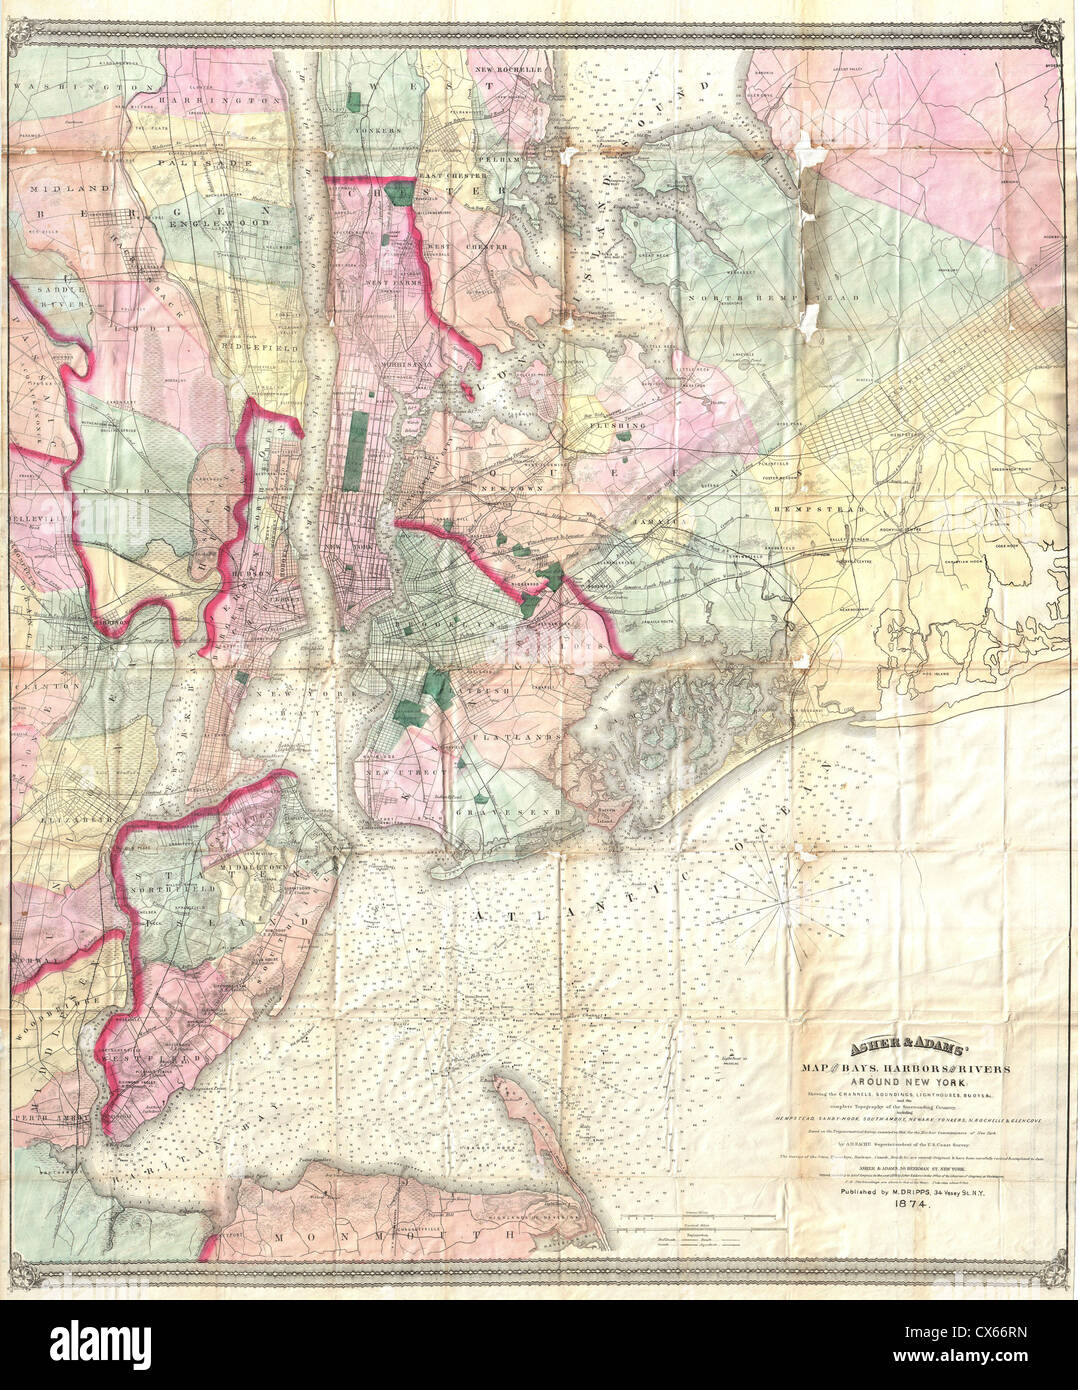 Map Of New York Rivers.1874 Dripps Map Of The Bays Harbors And Rivers Around New York City